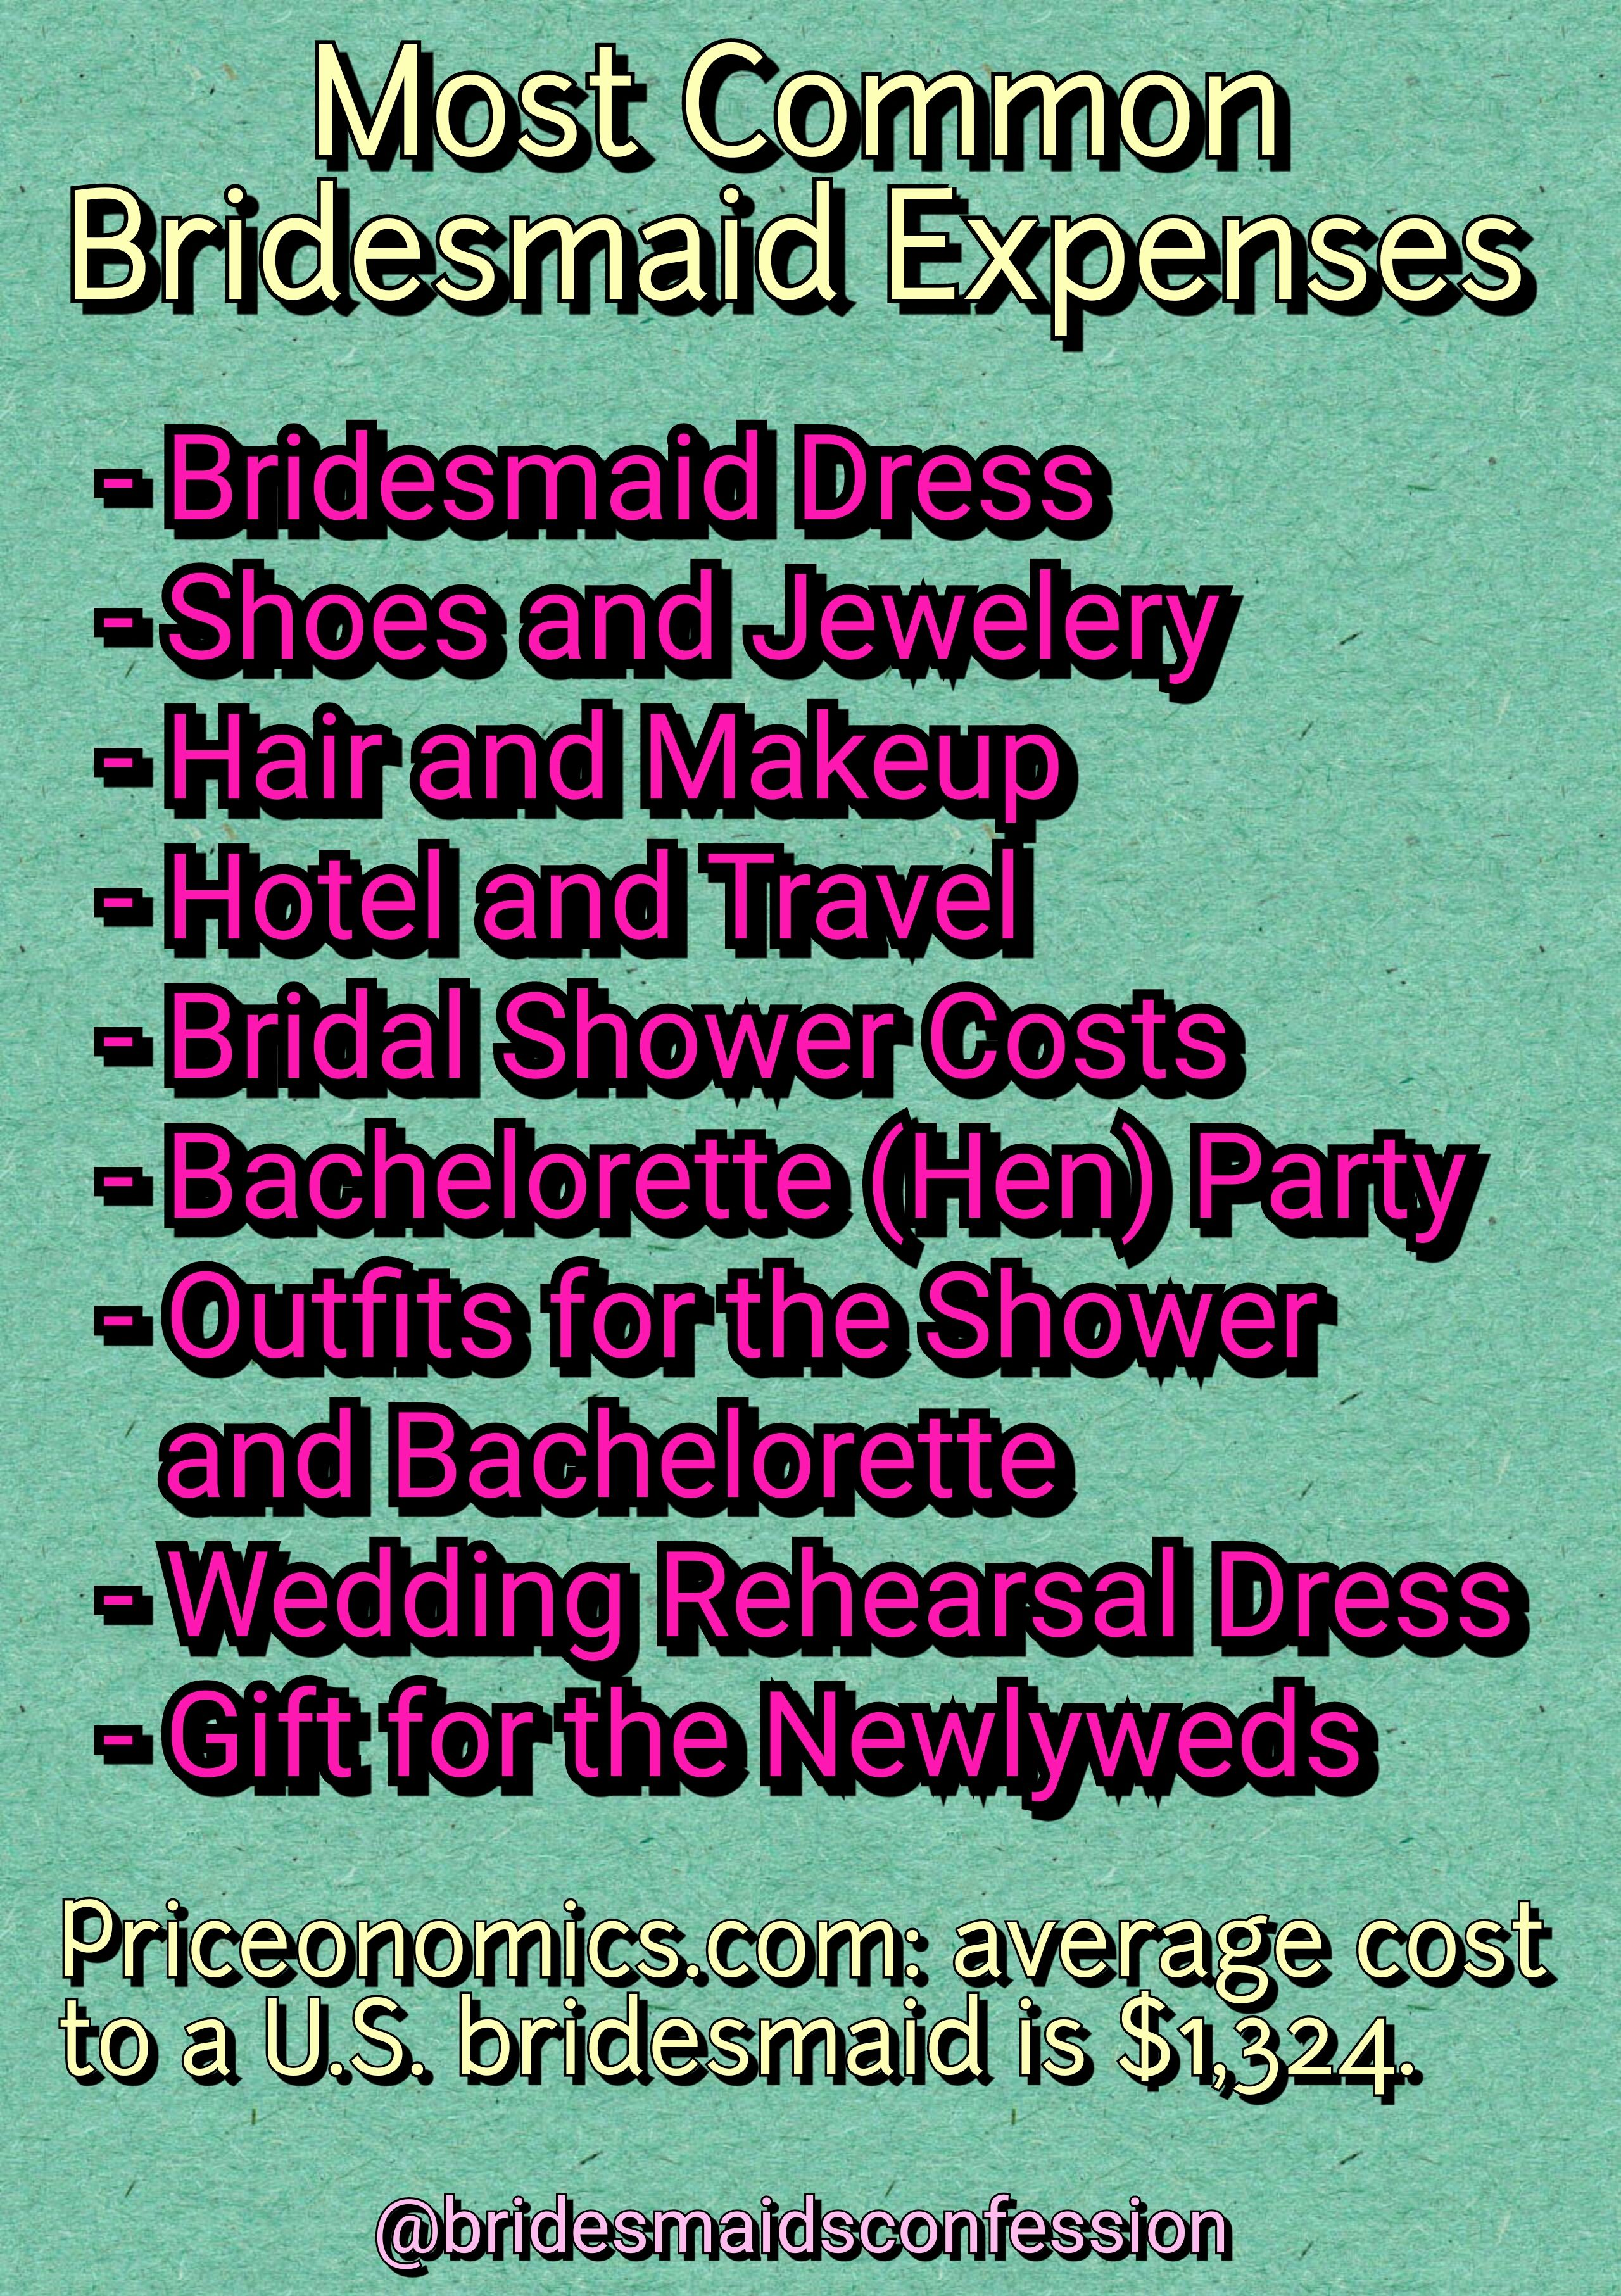 96adba55b7e Five Things To Consider Before Being a Bridesmaid - Guest Post at Wedding  It Your Way